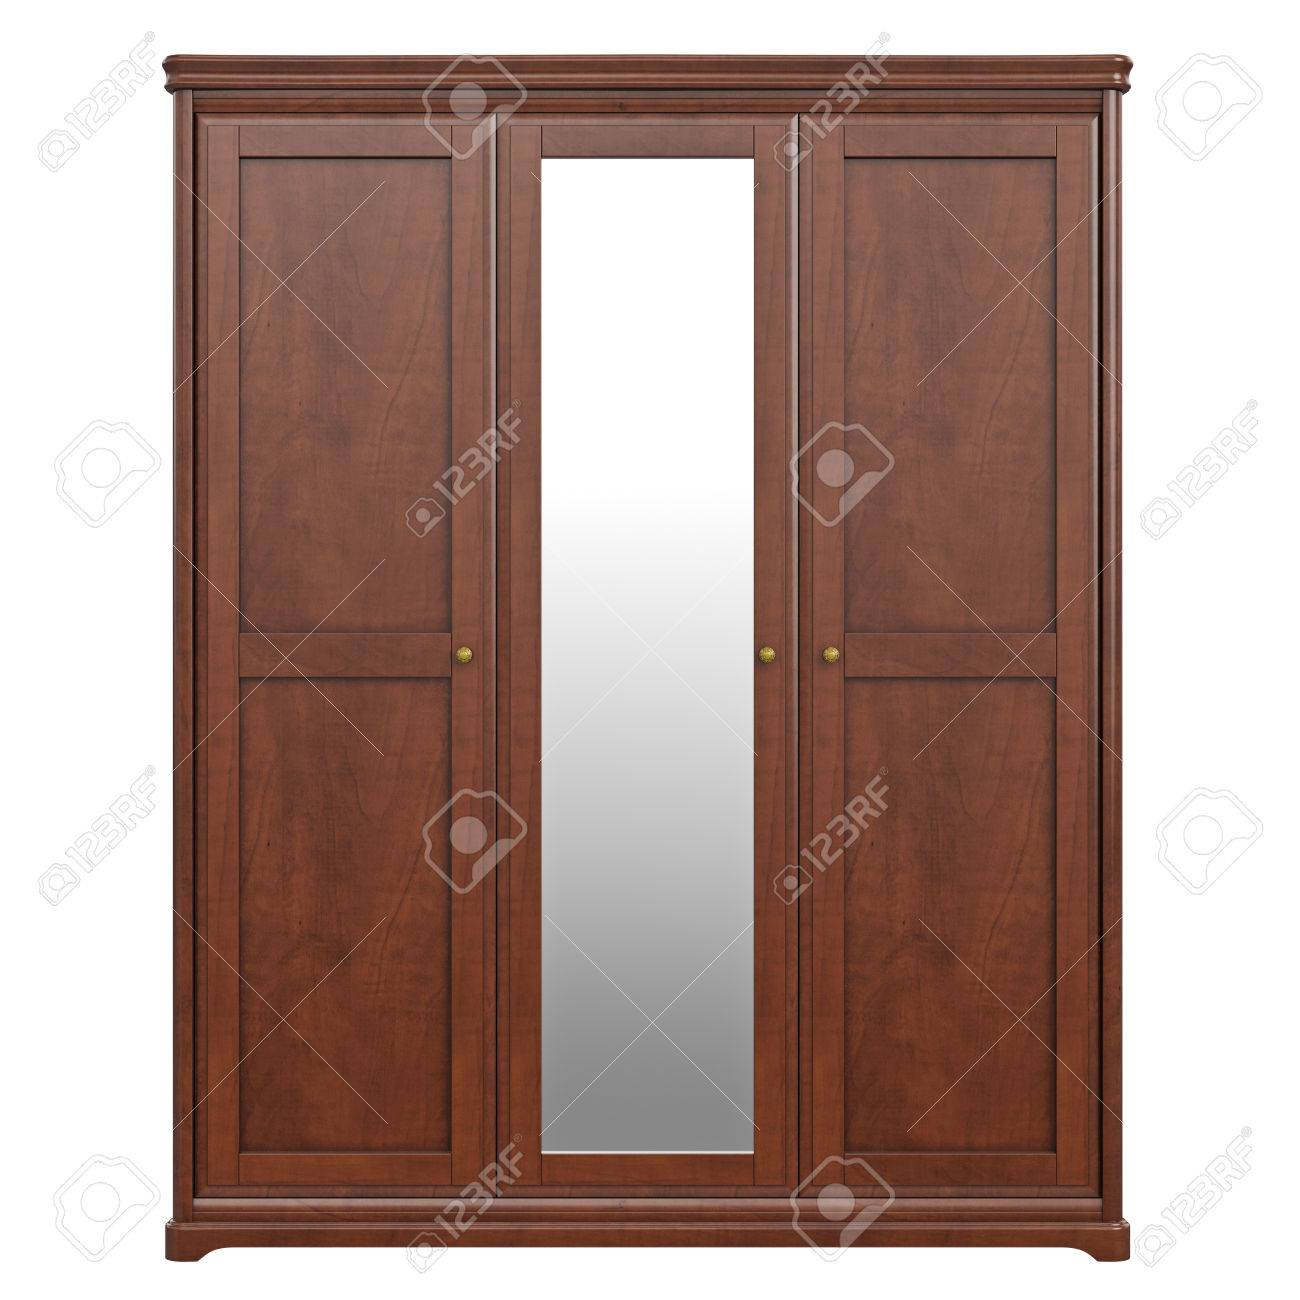 Cabinet Wardrobe, Front View. 3D Graphic Isolated Object On White ... for Wardrobe Front View  83fiz